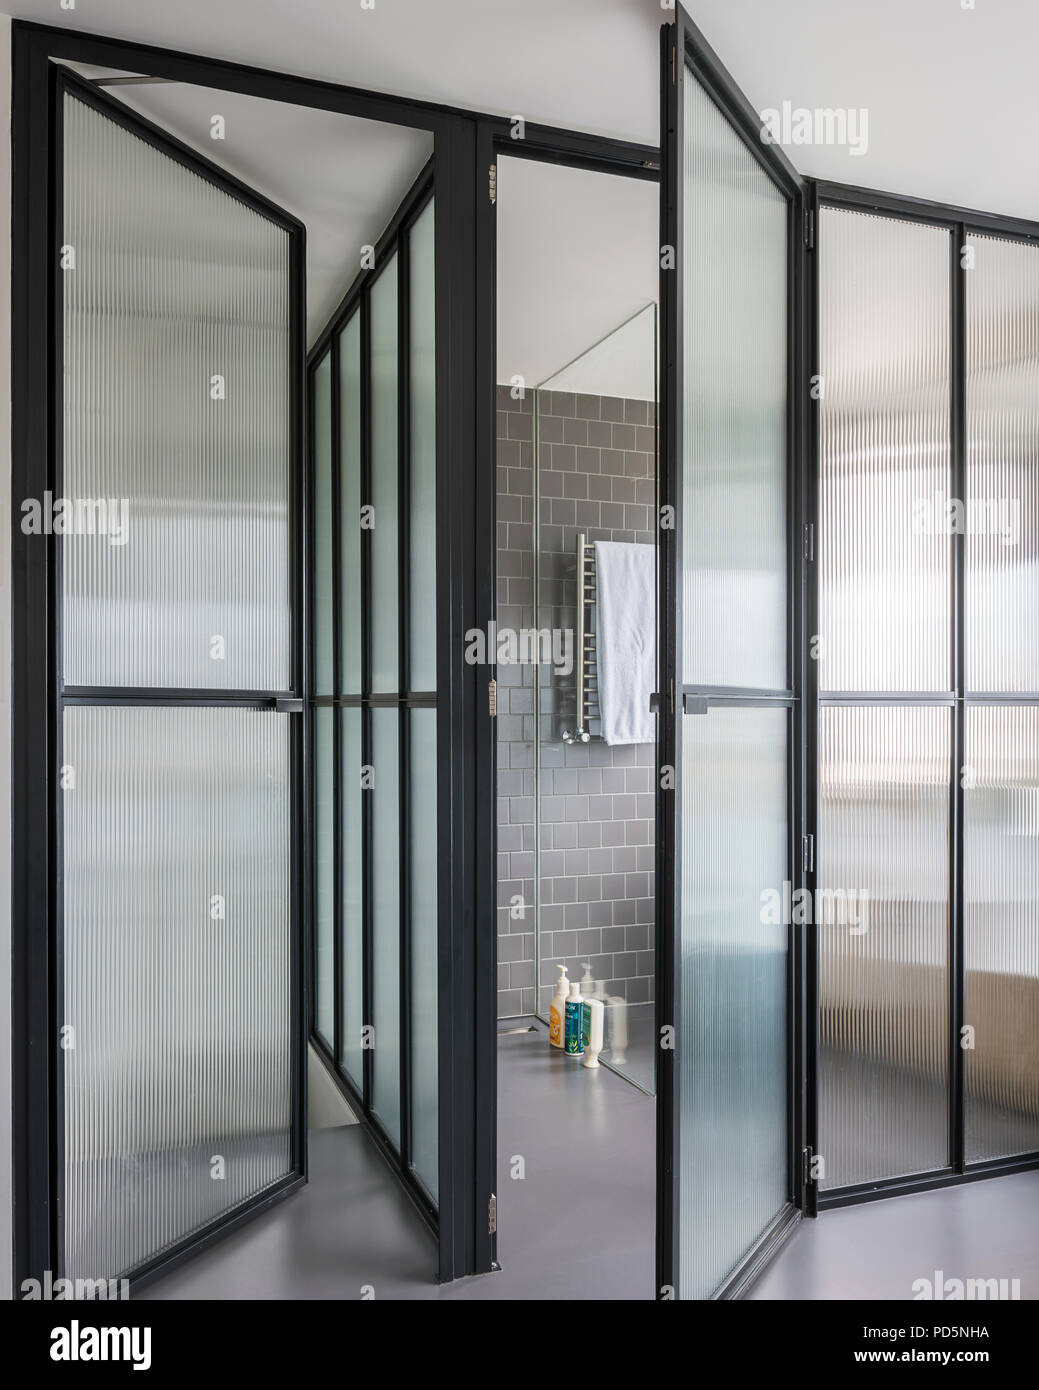 Corrugated glass panels in wet room - Stock Image